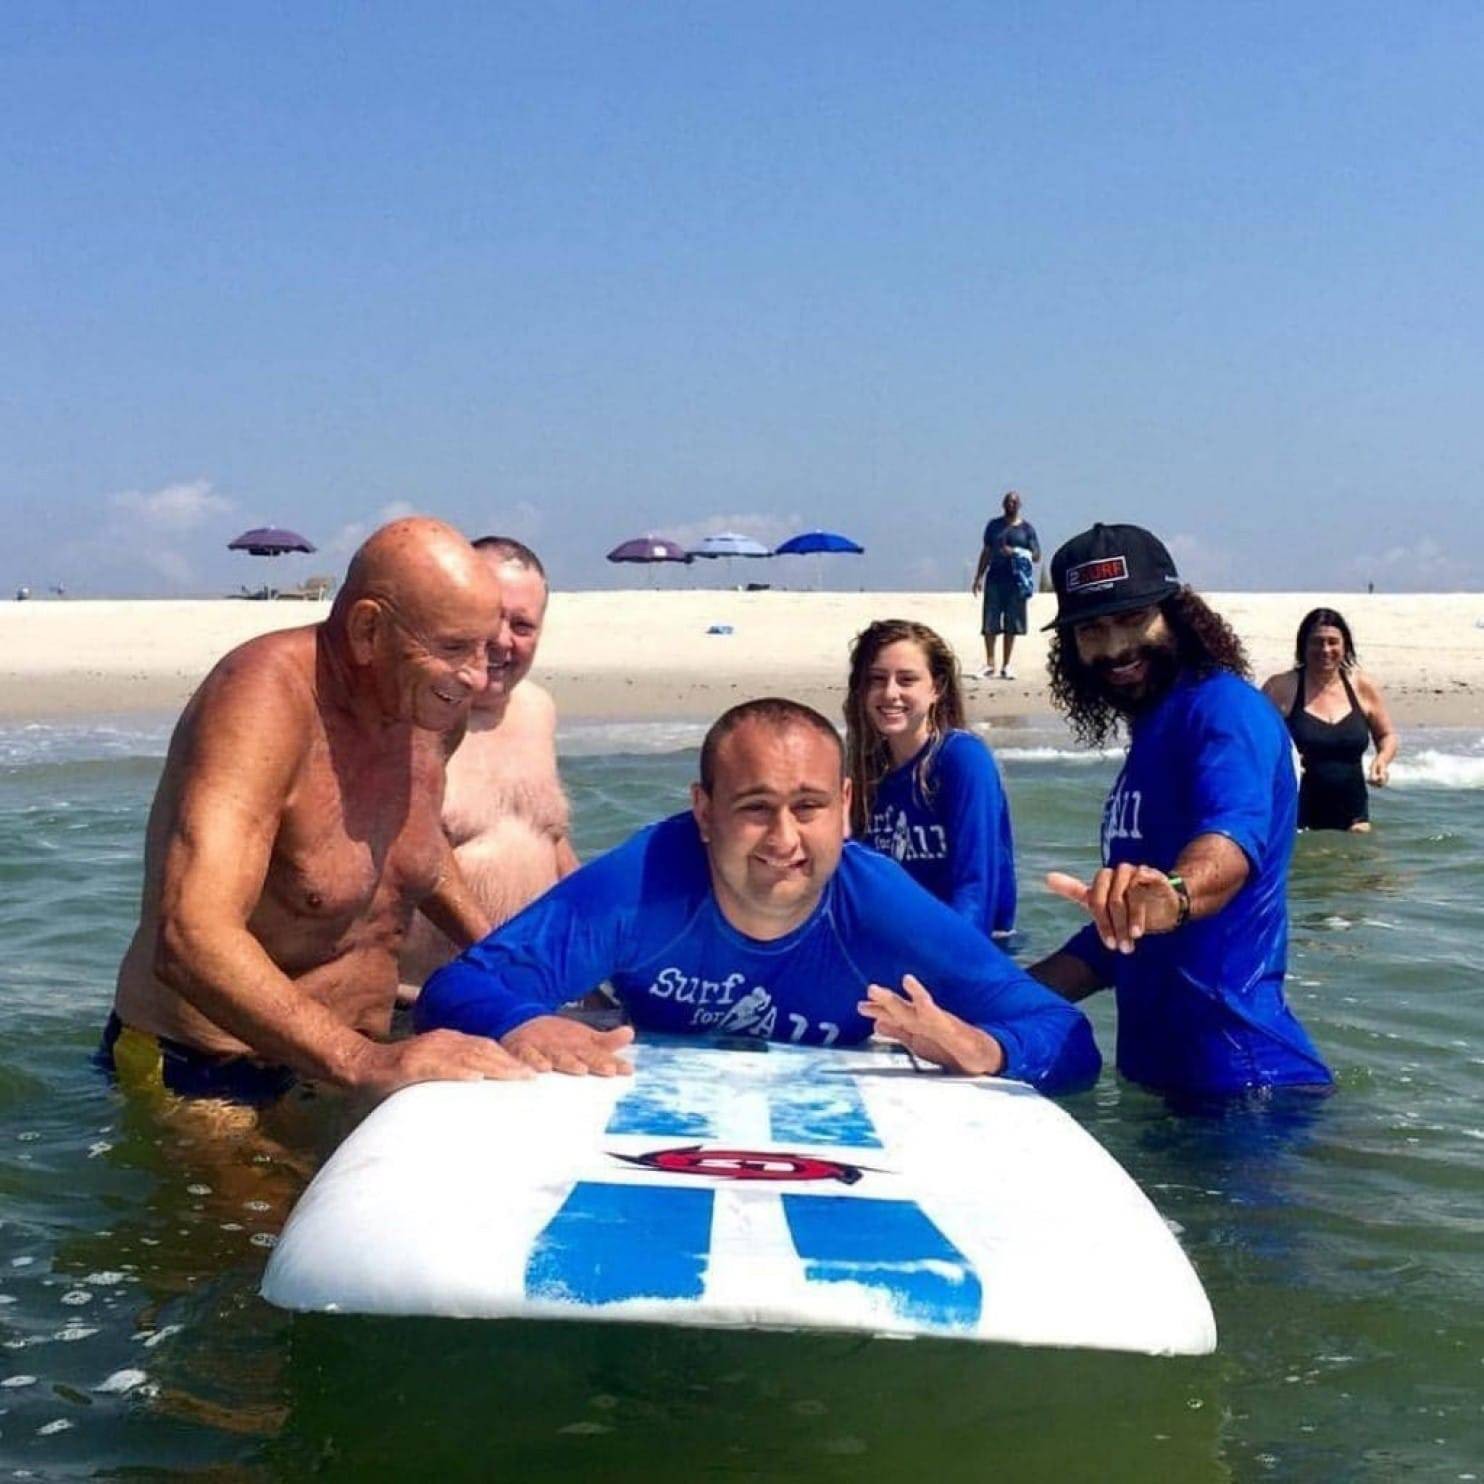 Dan Mulvaney, who suffers from a rare form of autism, has found joy on a surfboard. Surrounding him from left to right are family friend Harvey Weisenberg, his father James Mulvaney and two surf instructors.